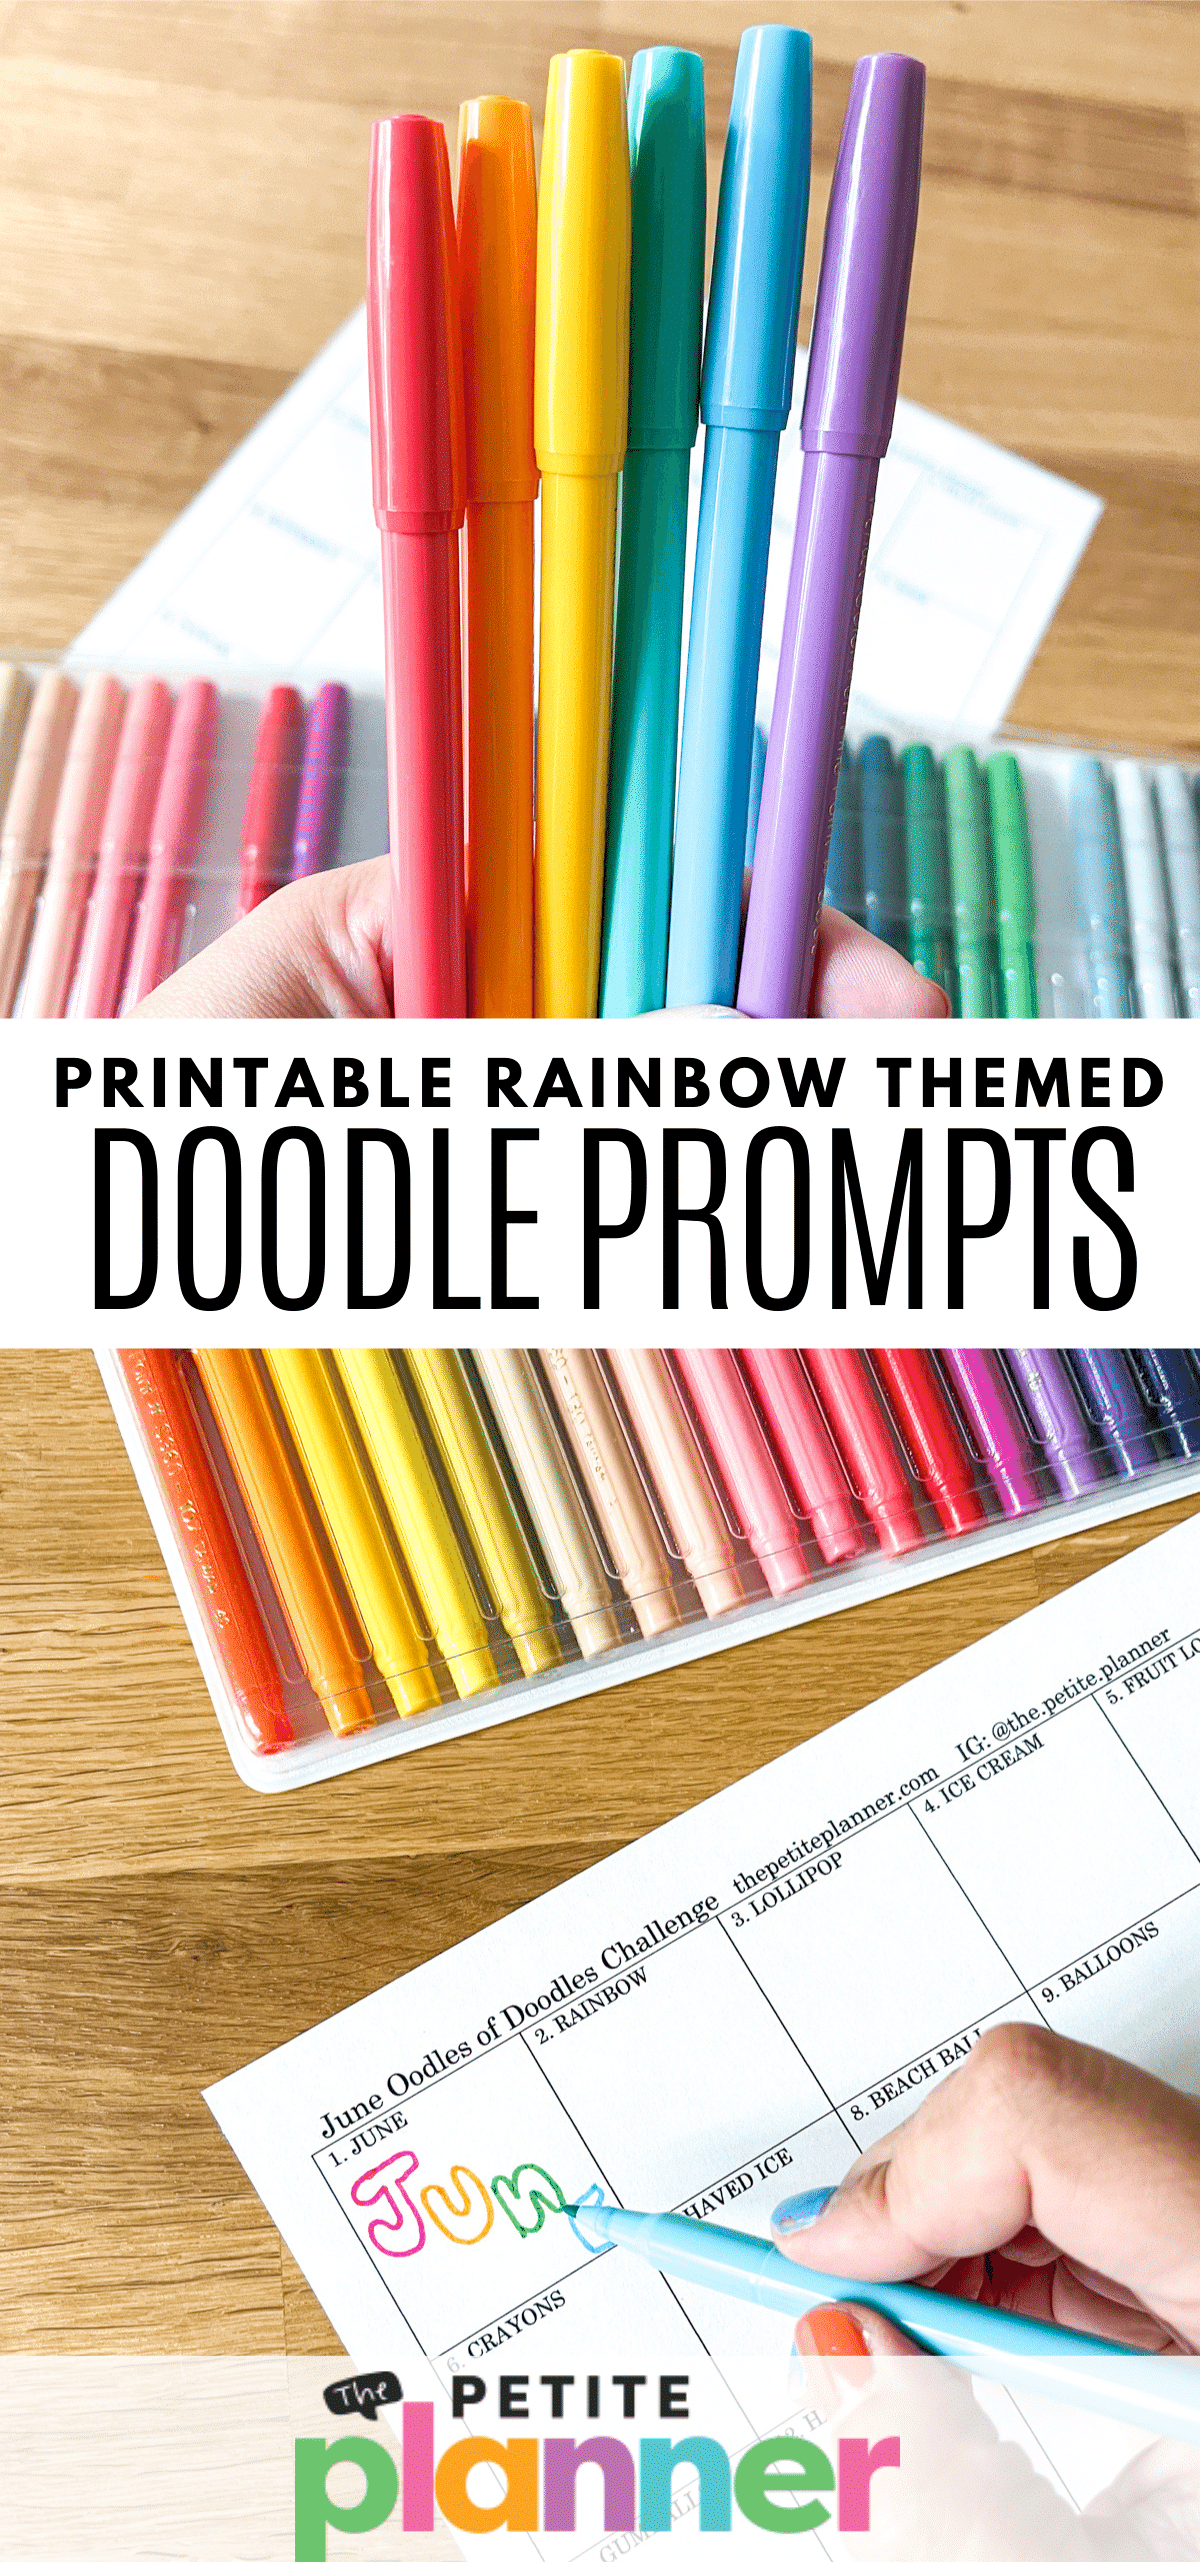 Rainbow Themed Doodle Prompts